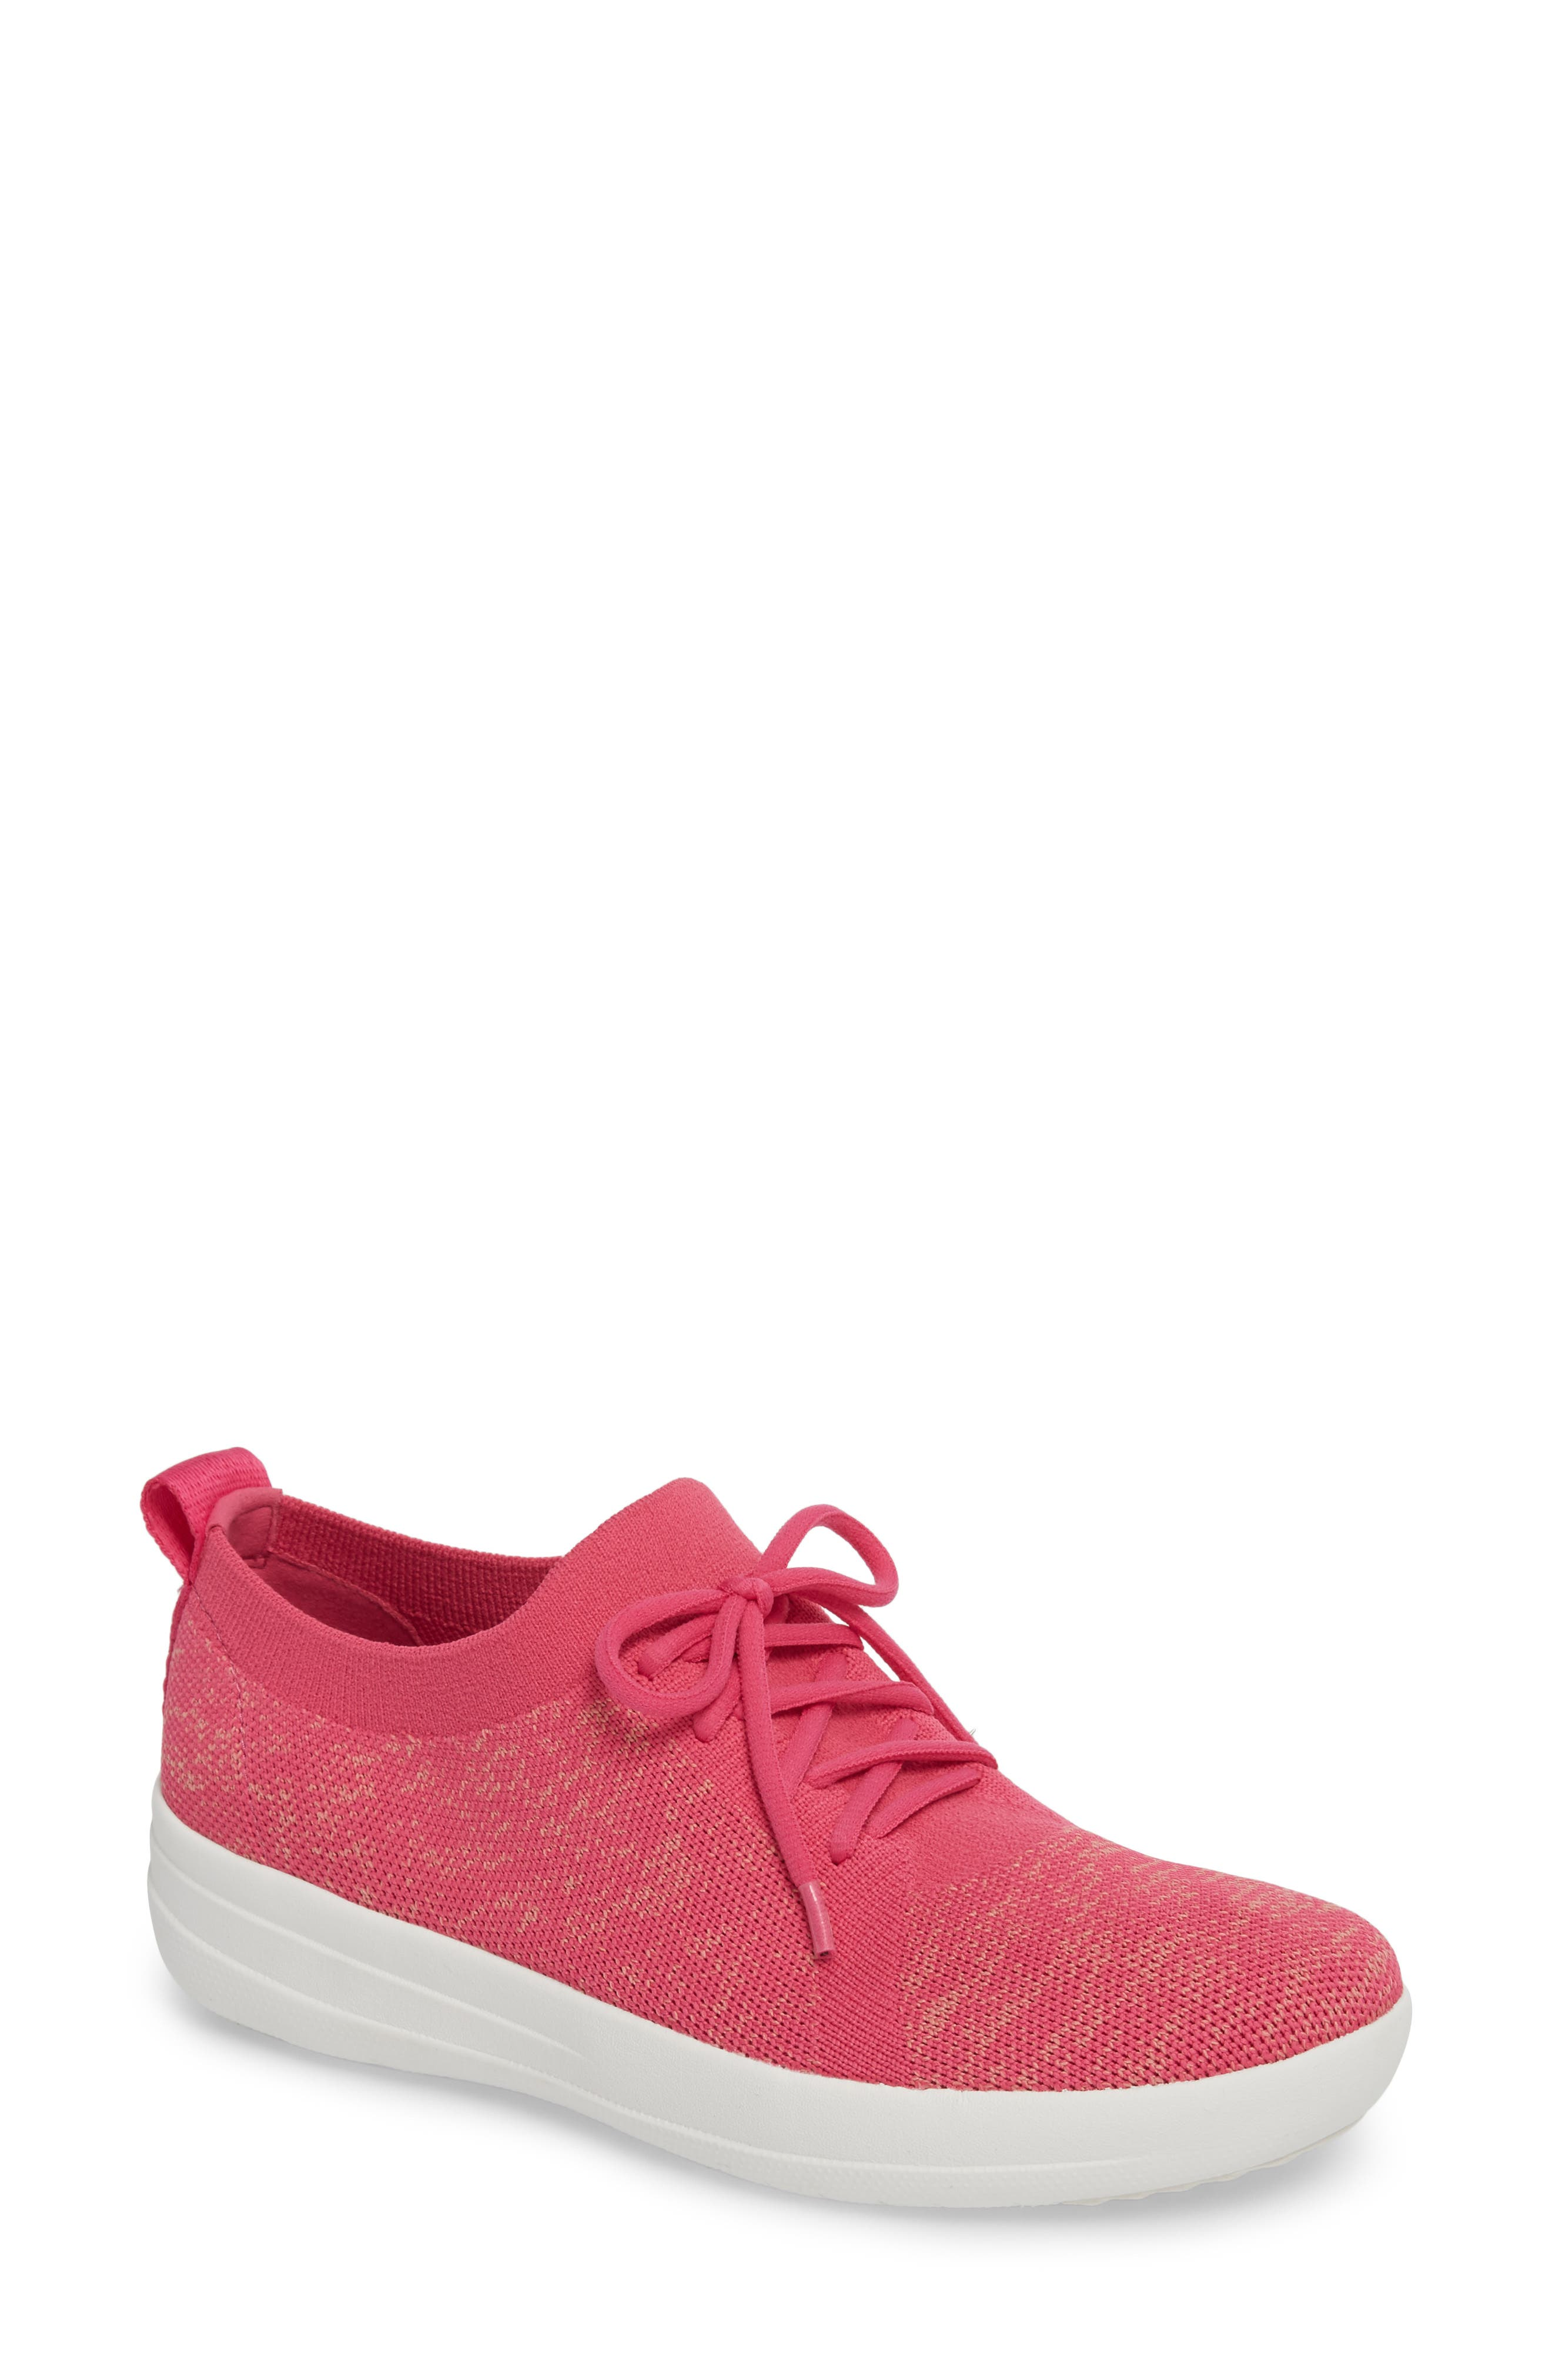 F-Sporty Uberknit<sup>™</sup> Sneaker,                         Main,                         color, FUCHSIA/ DUSTY PINK